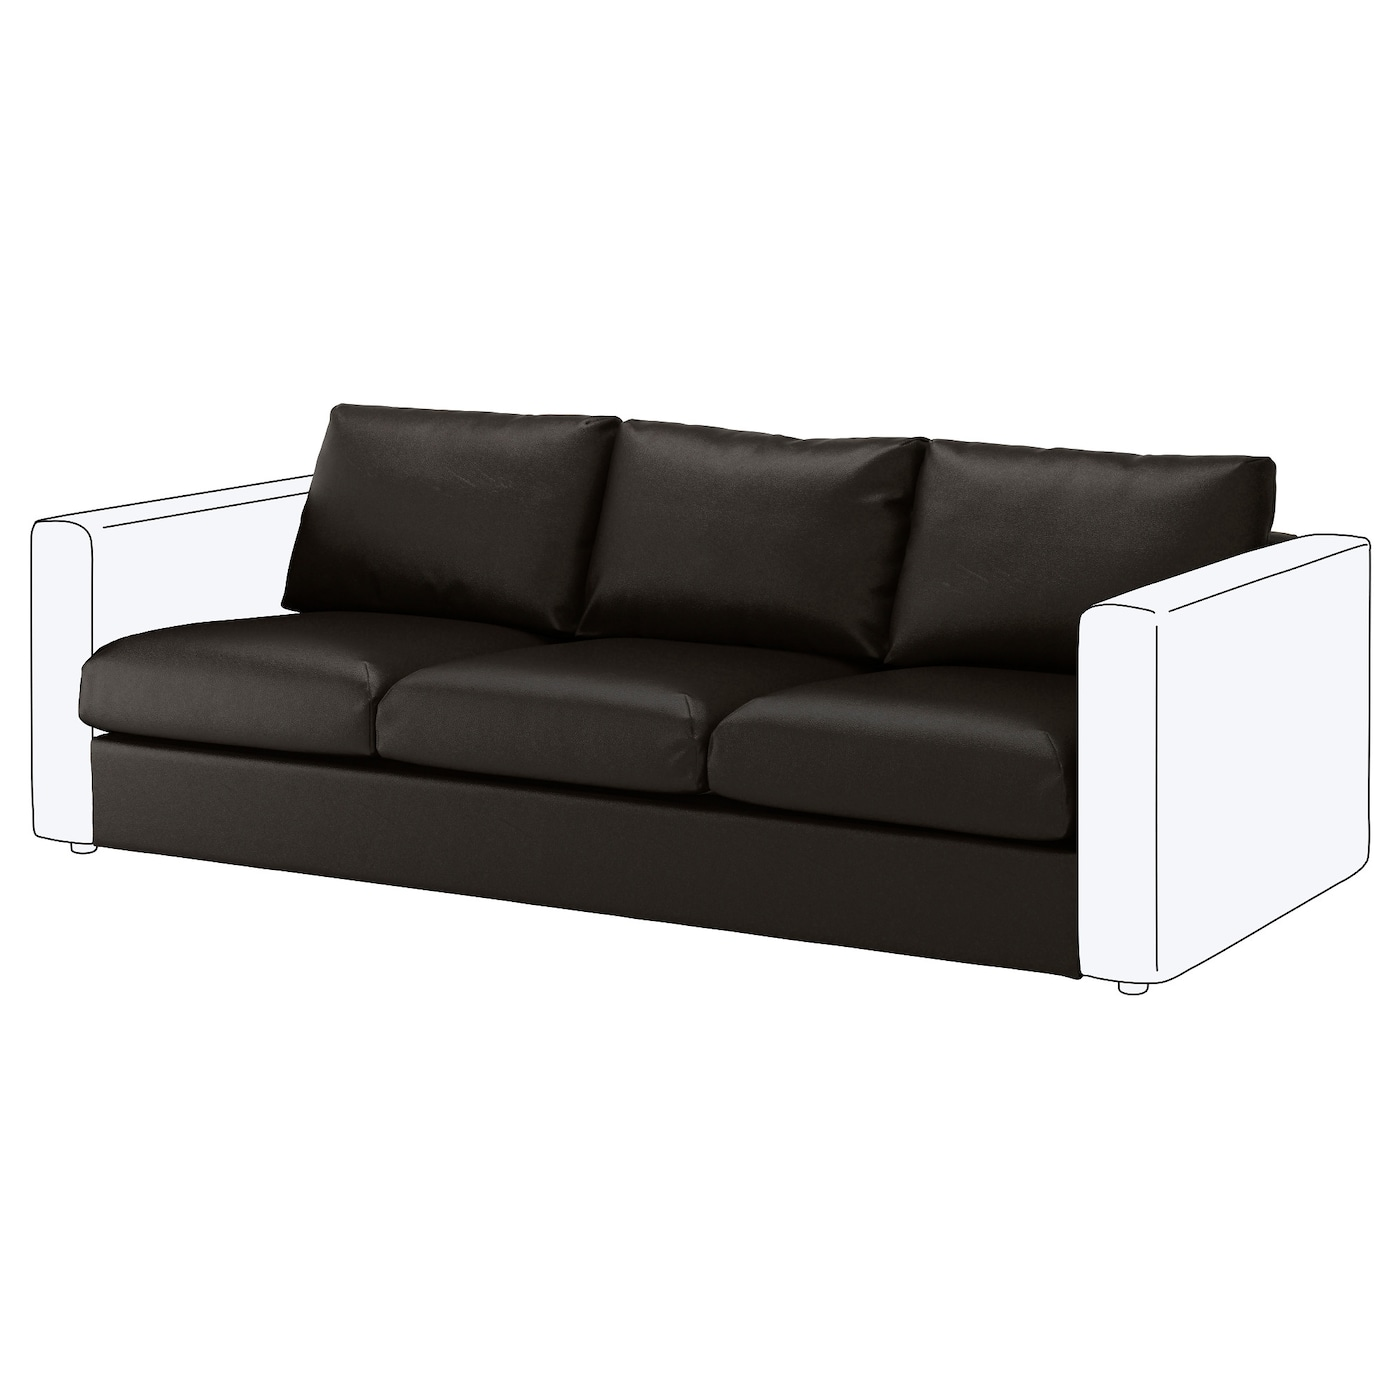 IKEA VIMLE 3-seat section 10 year guarantee. Read about the terms in the guarantee brochure.